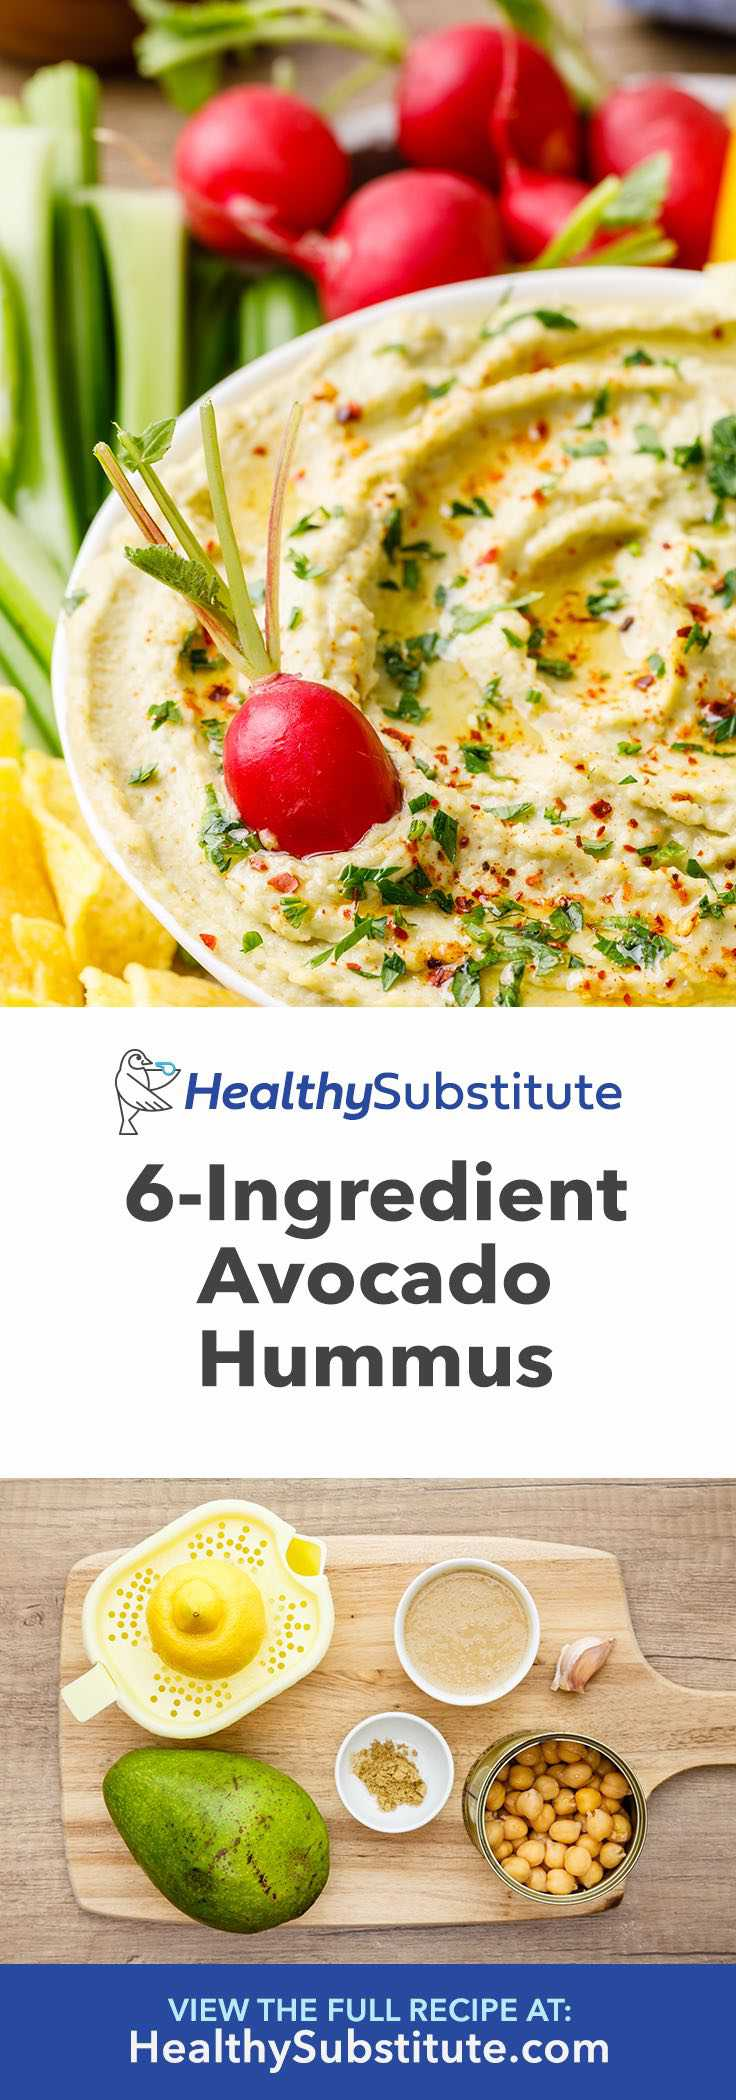 This tasty avocado hummus is so easy to make and really good for you.